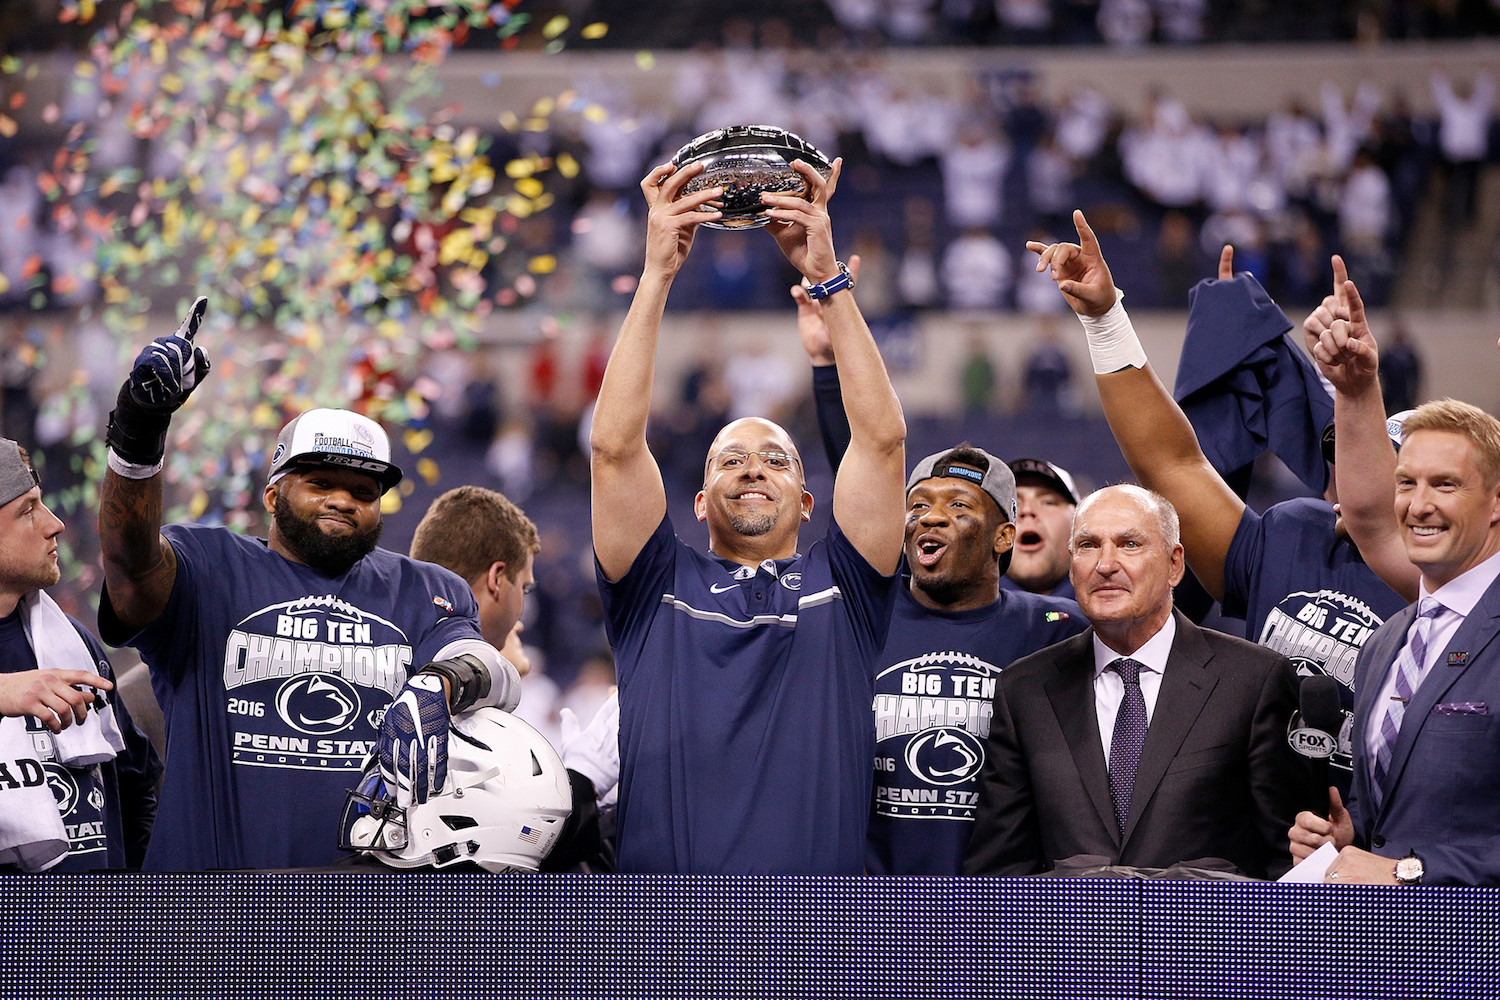 INDIANAPOLIS, IN - DECEMBER 03: James Franklin, head coach of the Penn State Nittany Lions, celebrates with the Big Ten Championship trophy after Penn State beat the Wisconsin Badgers 38-31 at Lucas Oil Stadium on December 3, 2016 in Indianapolis, Indiana.  (Photo by Joe Robbins/Getty Images)